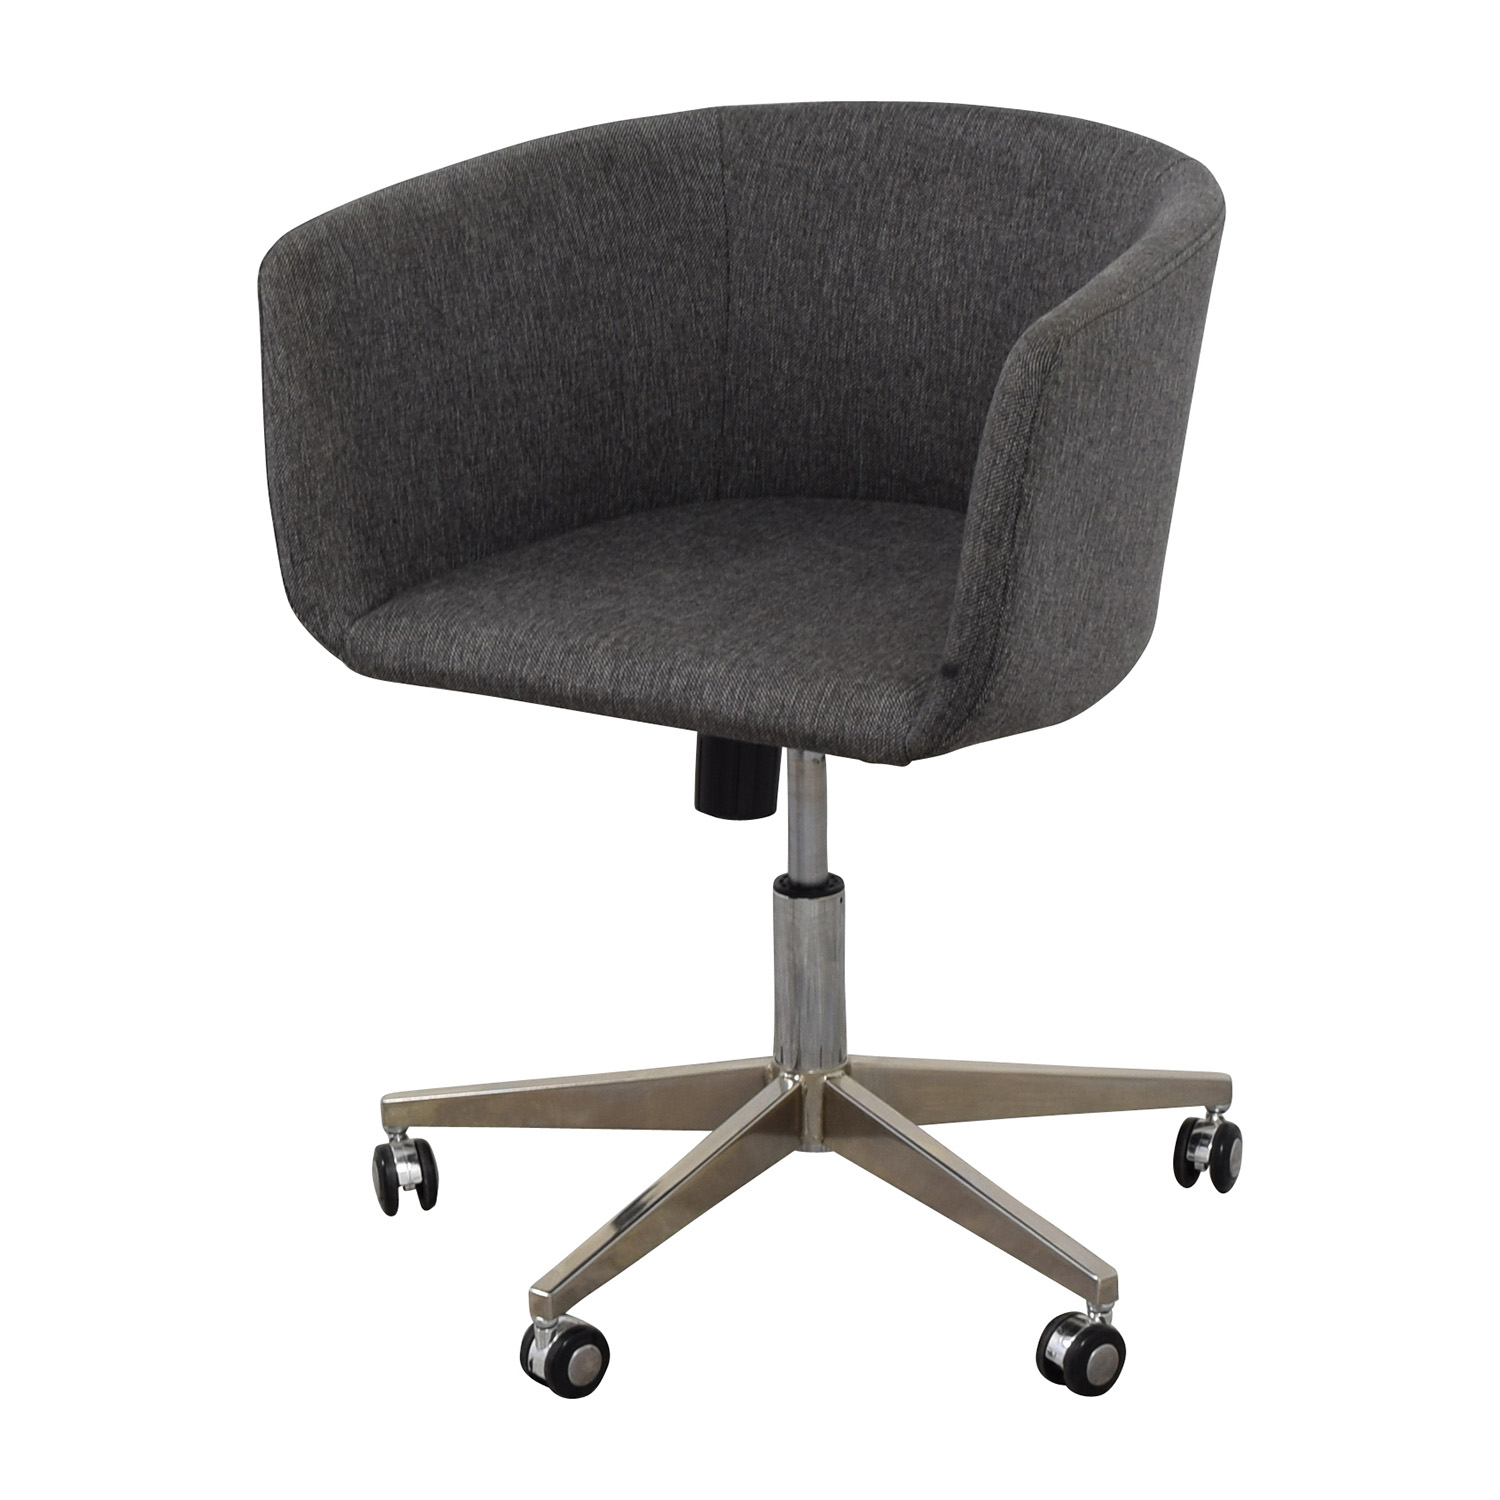 80 off modern grey office chair with chrome wheels chairs for Home office chairs with wheels